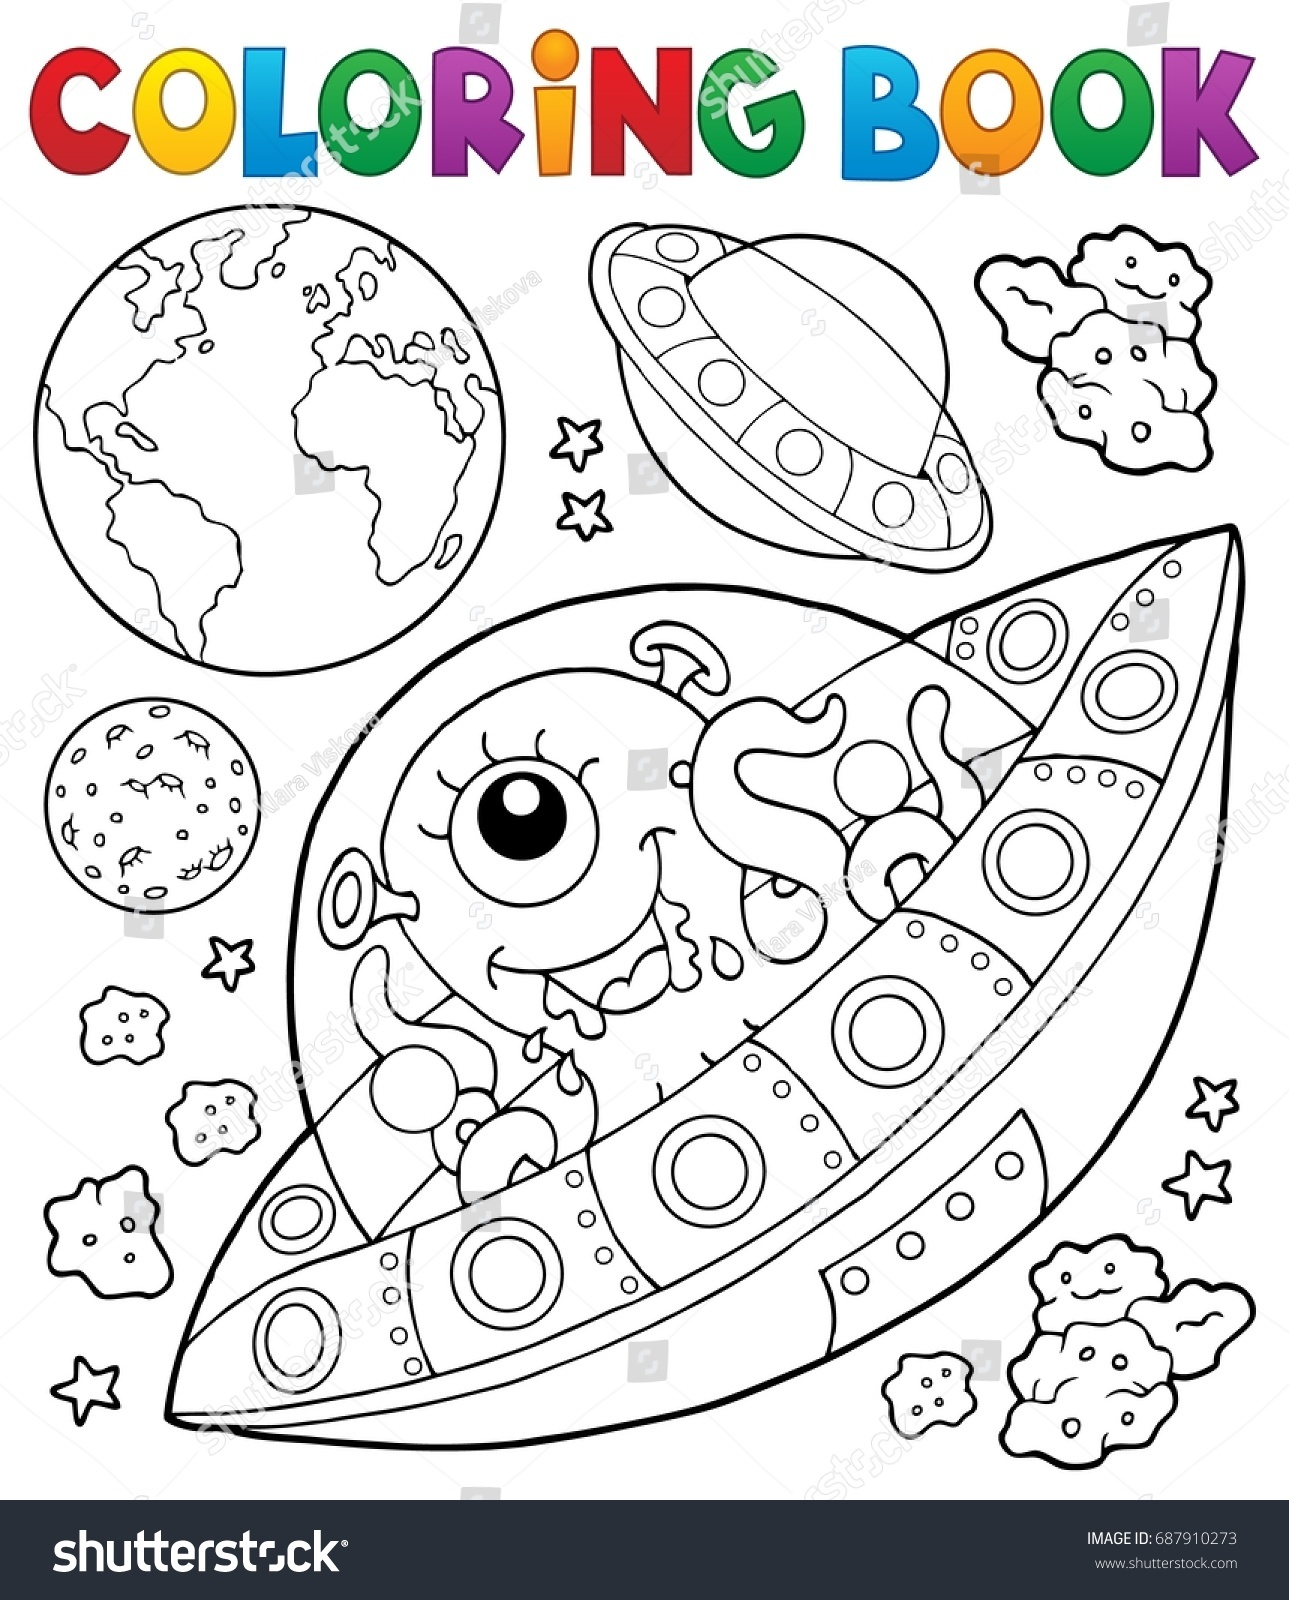 coloring book flying saucers near earth stock vector 687910273